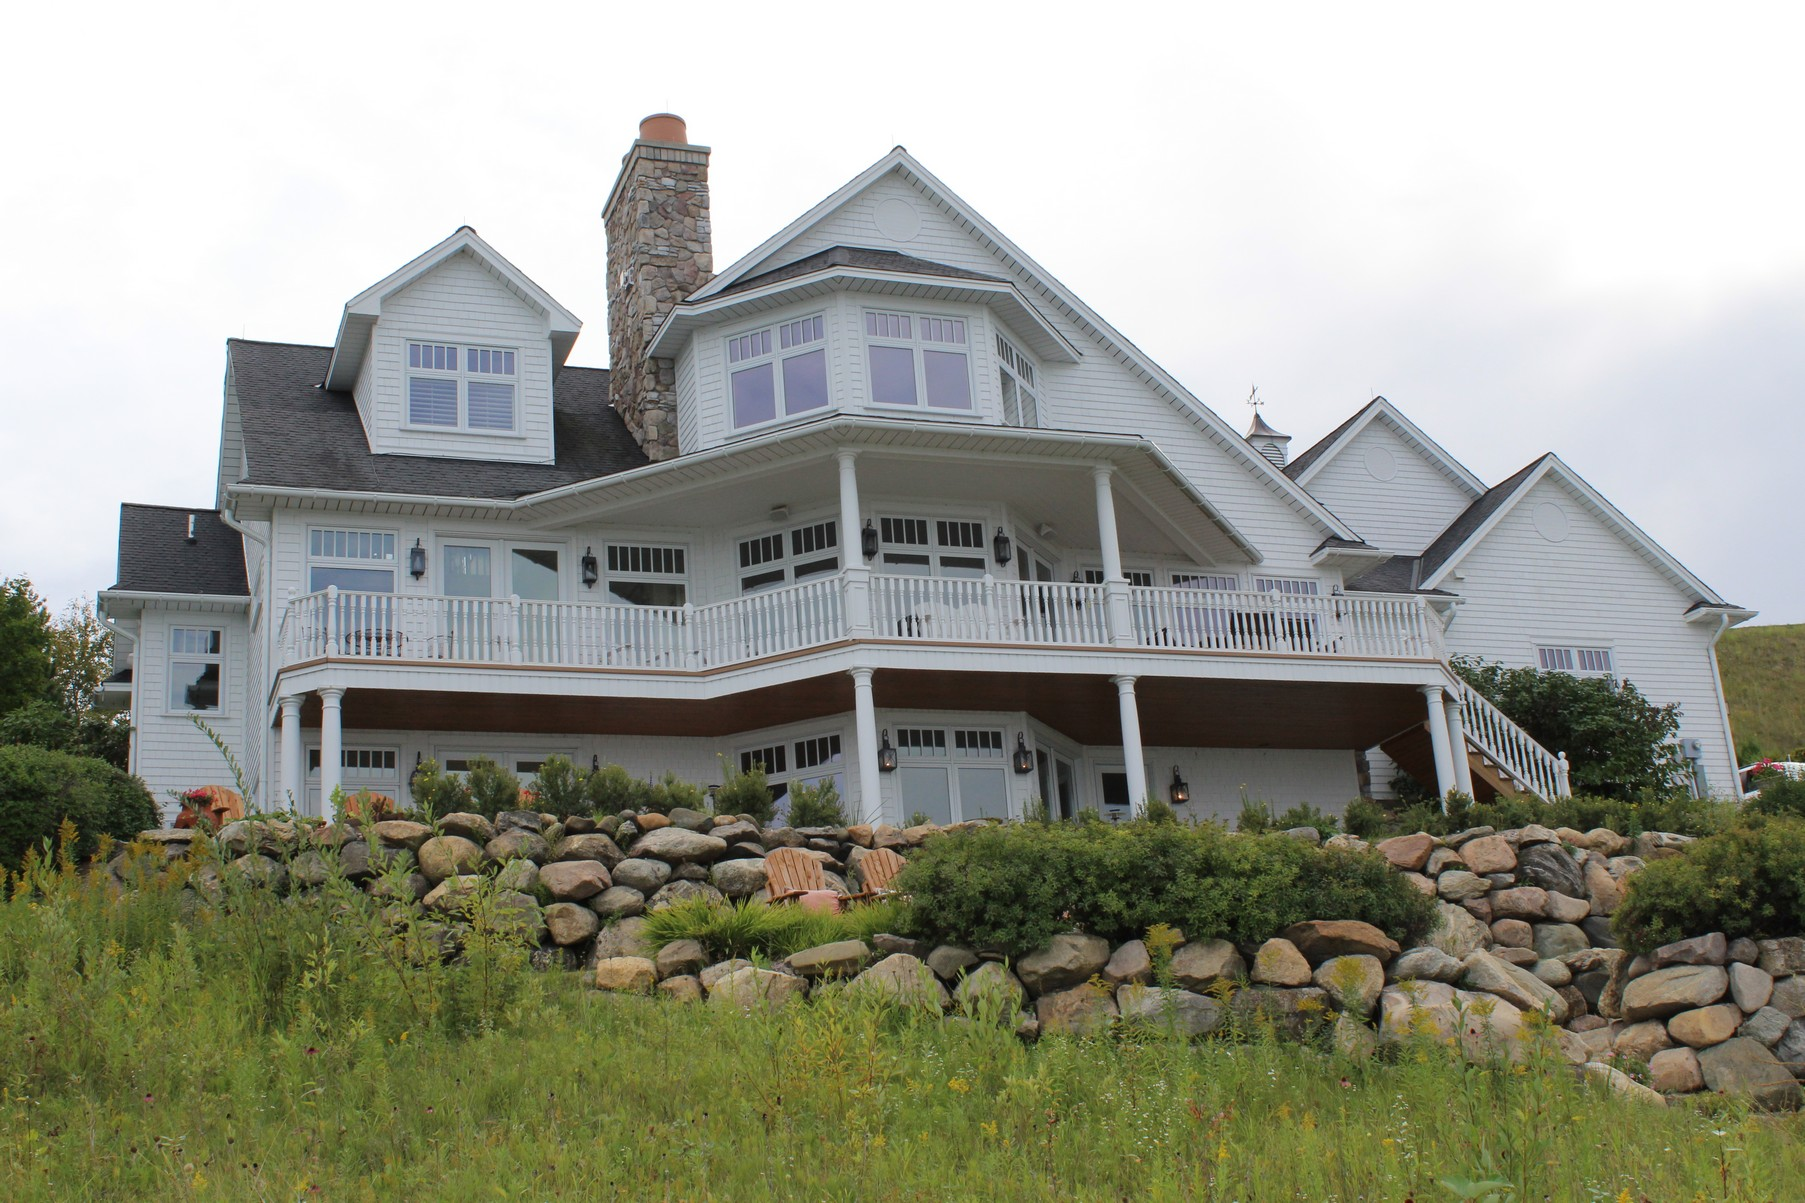 Single Family Home for Sale at Bluff-Side Coastal Home on Lake Michigan 5192 Coastal Drive Bay Harbor, Michigan 49770 United States